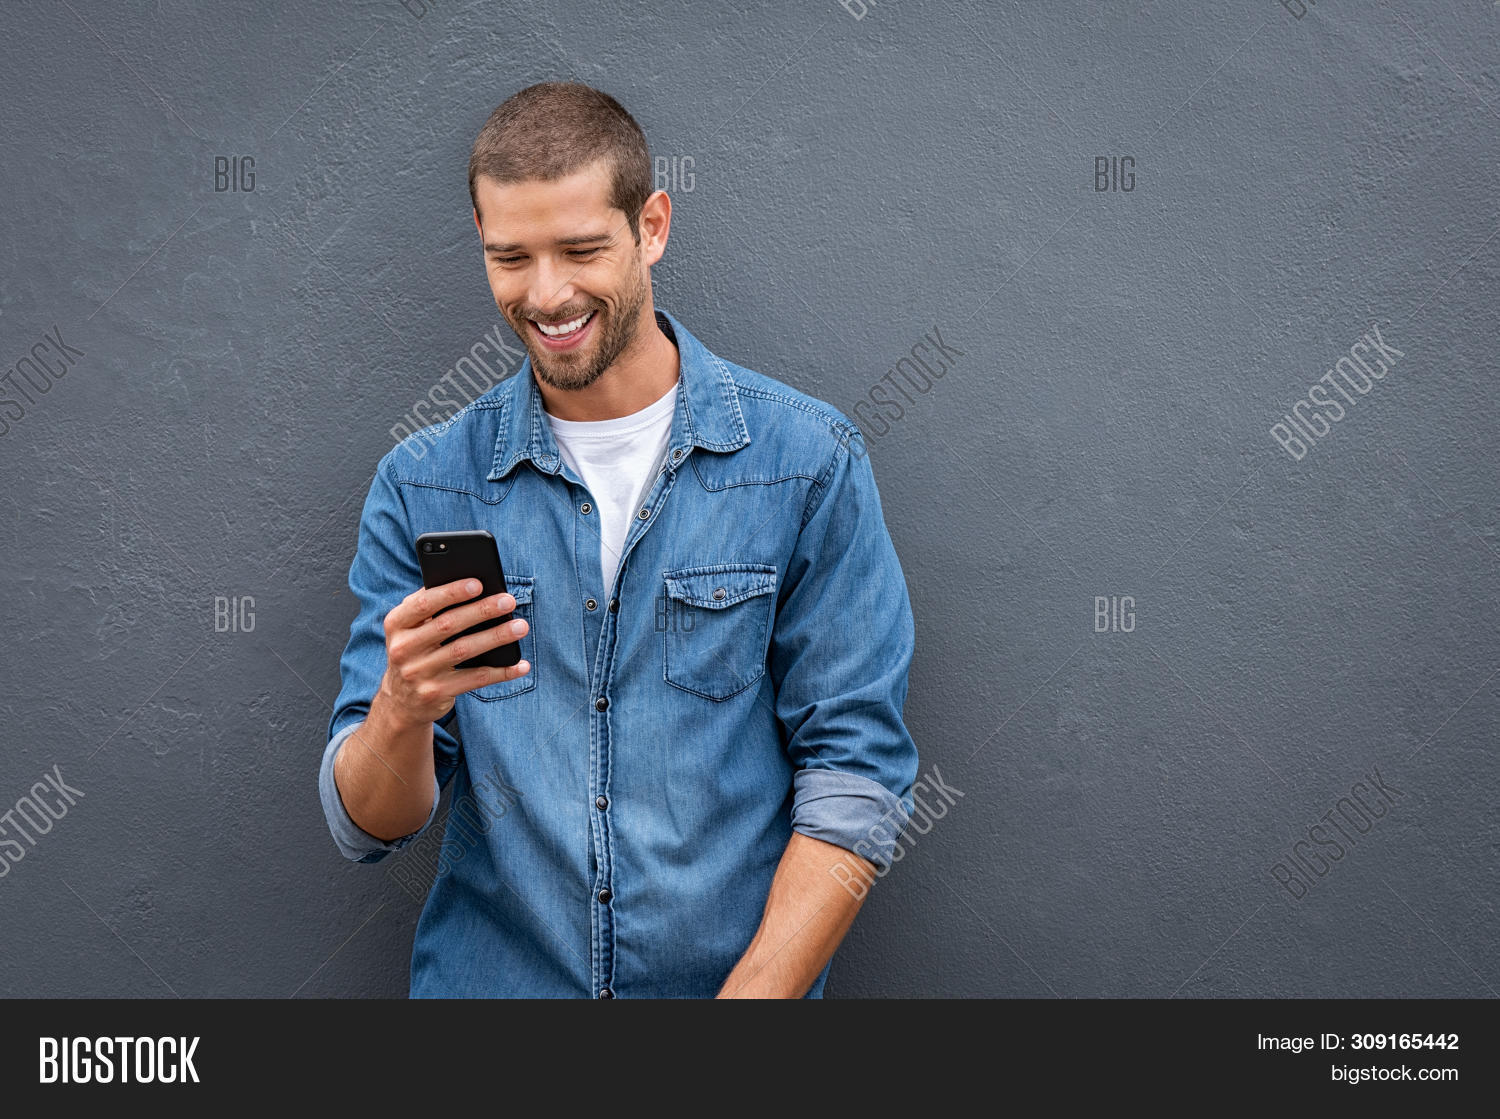 app,application,background,carefree,casual,cellphone,chatting,cheerful,communication,connection,cool,copy space,gray background,grey,grey background,grey wall,guy,happy,holding,internet,isolated,joyful,man,message,message phone,messaging,mobile,mobile icon,people,phone,phone message,satisfaction,smart,smartphone,smile,sms,stylish,technology,telephone,texting,toothy smile,trendy,typing,using,using phone,wall,wifi,young,young man